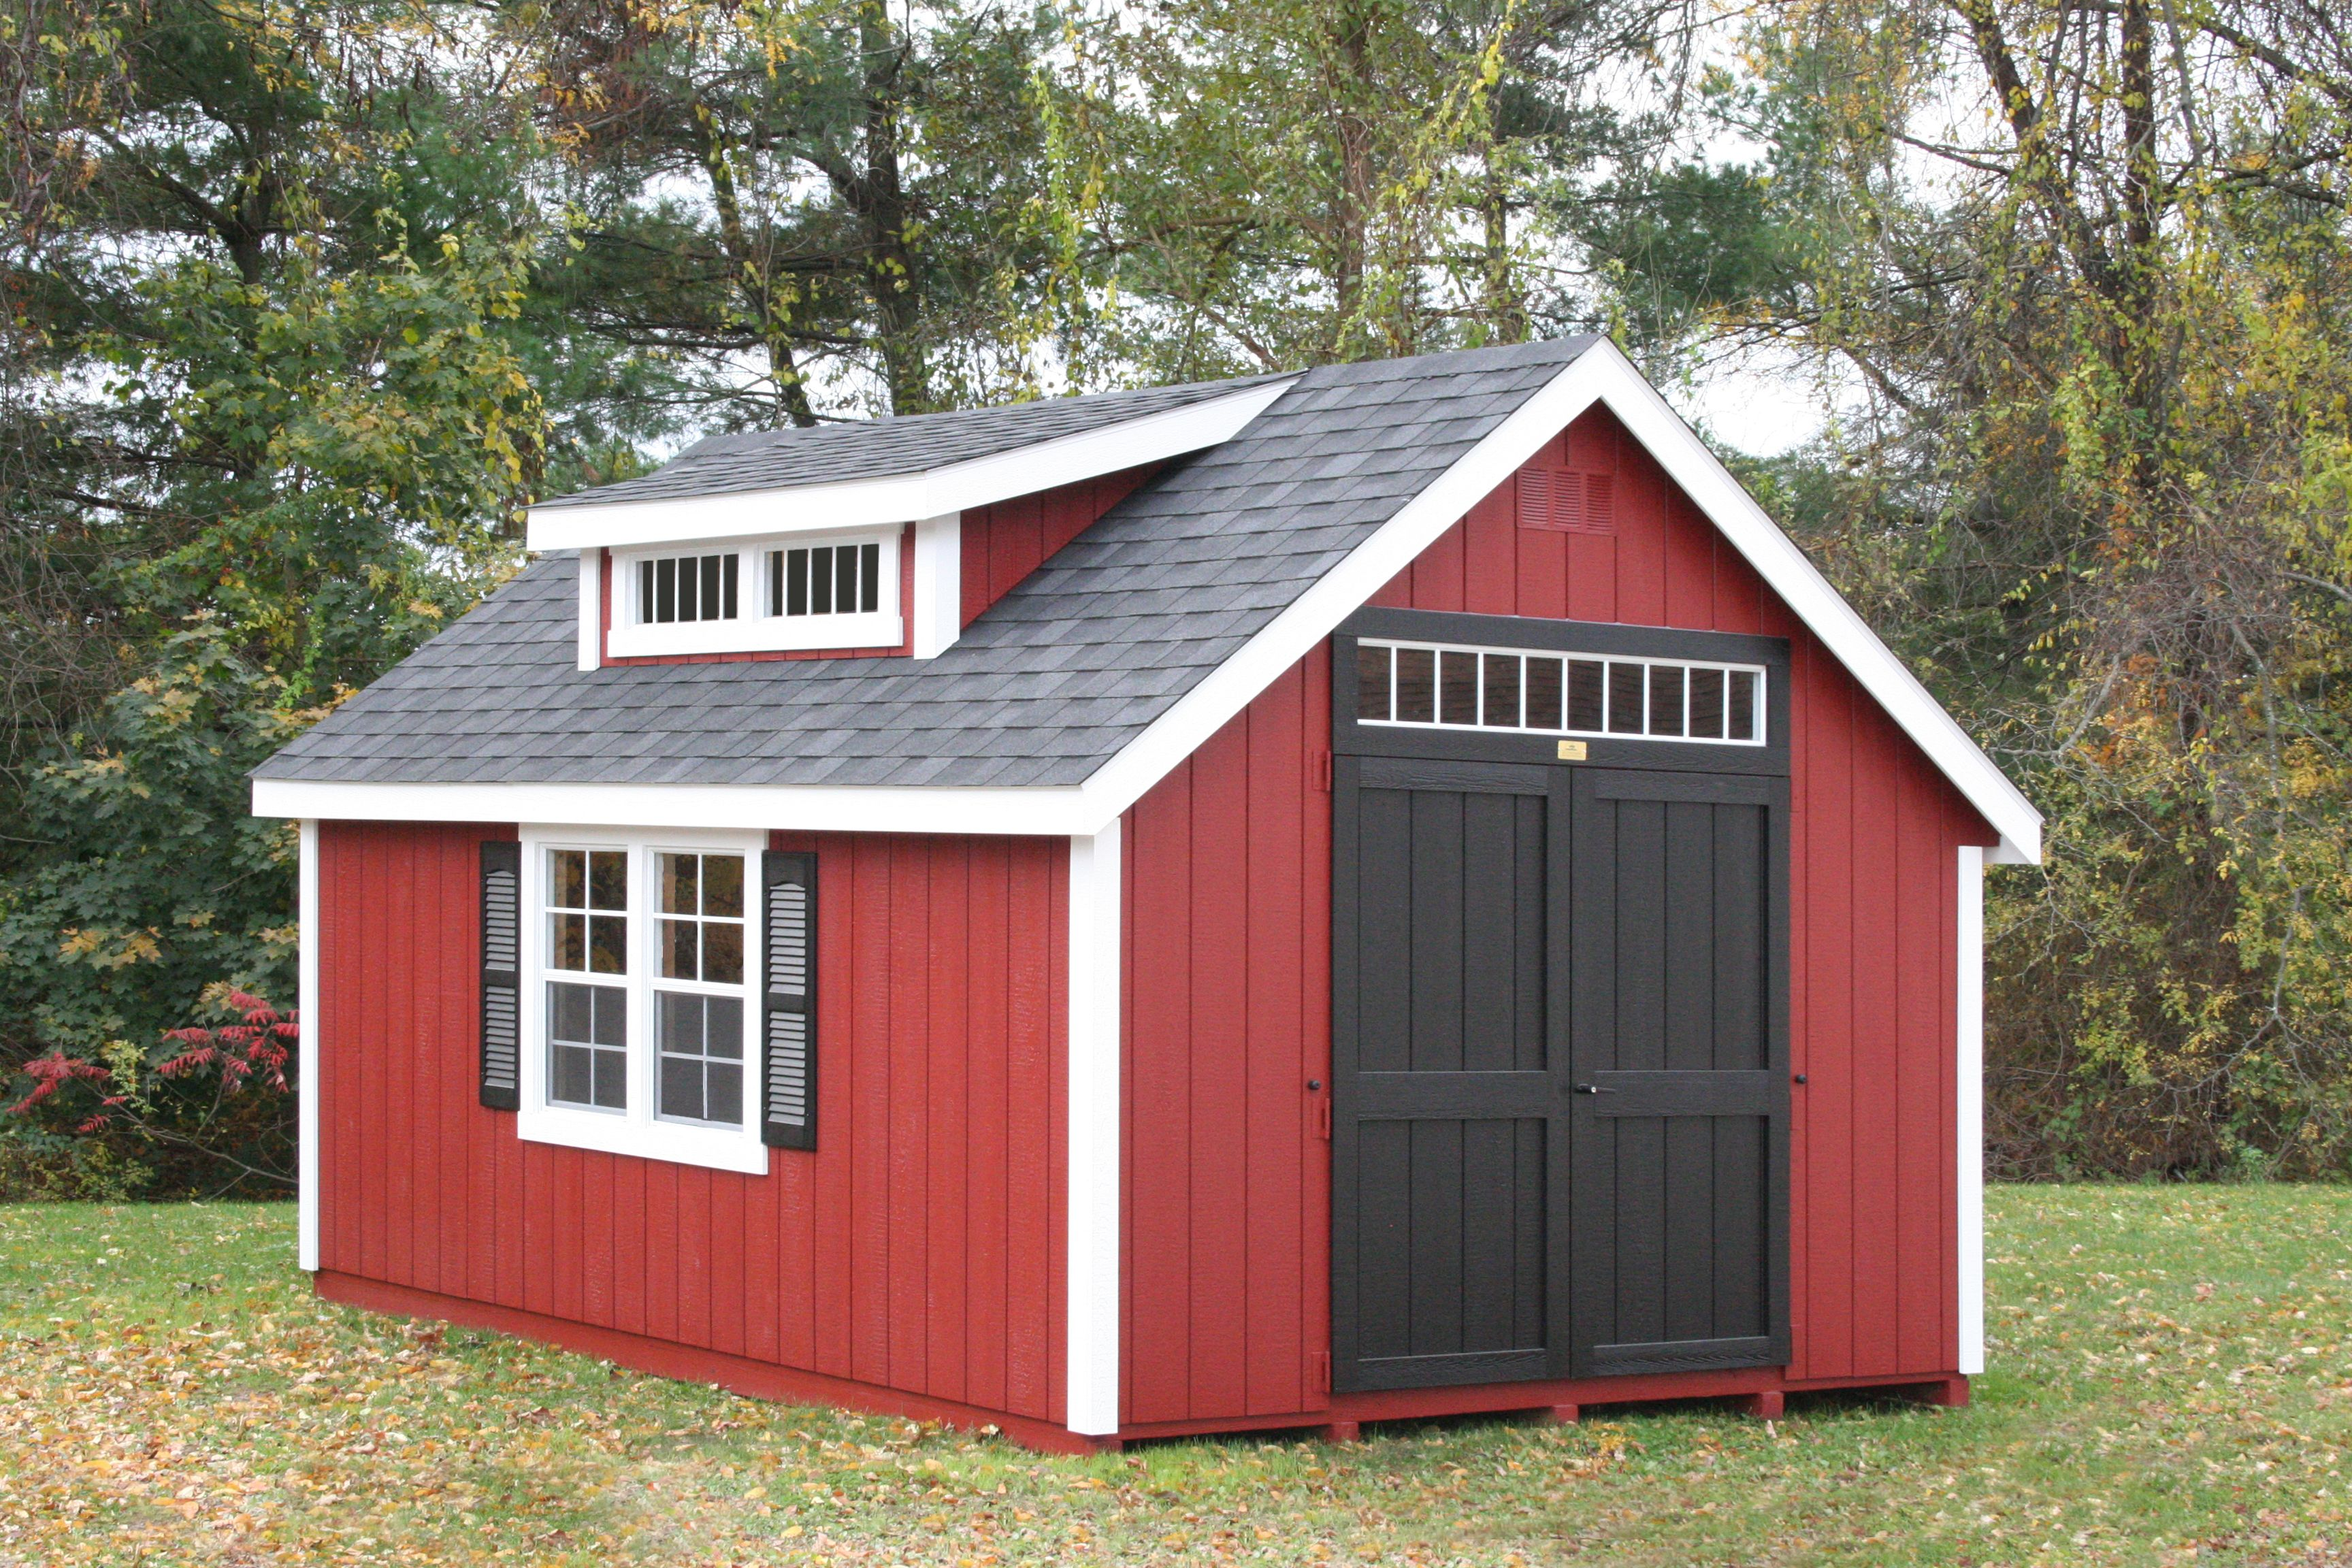 adding a mini shed dormer with transom windows to our new england